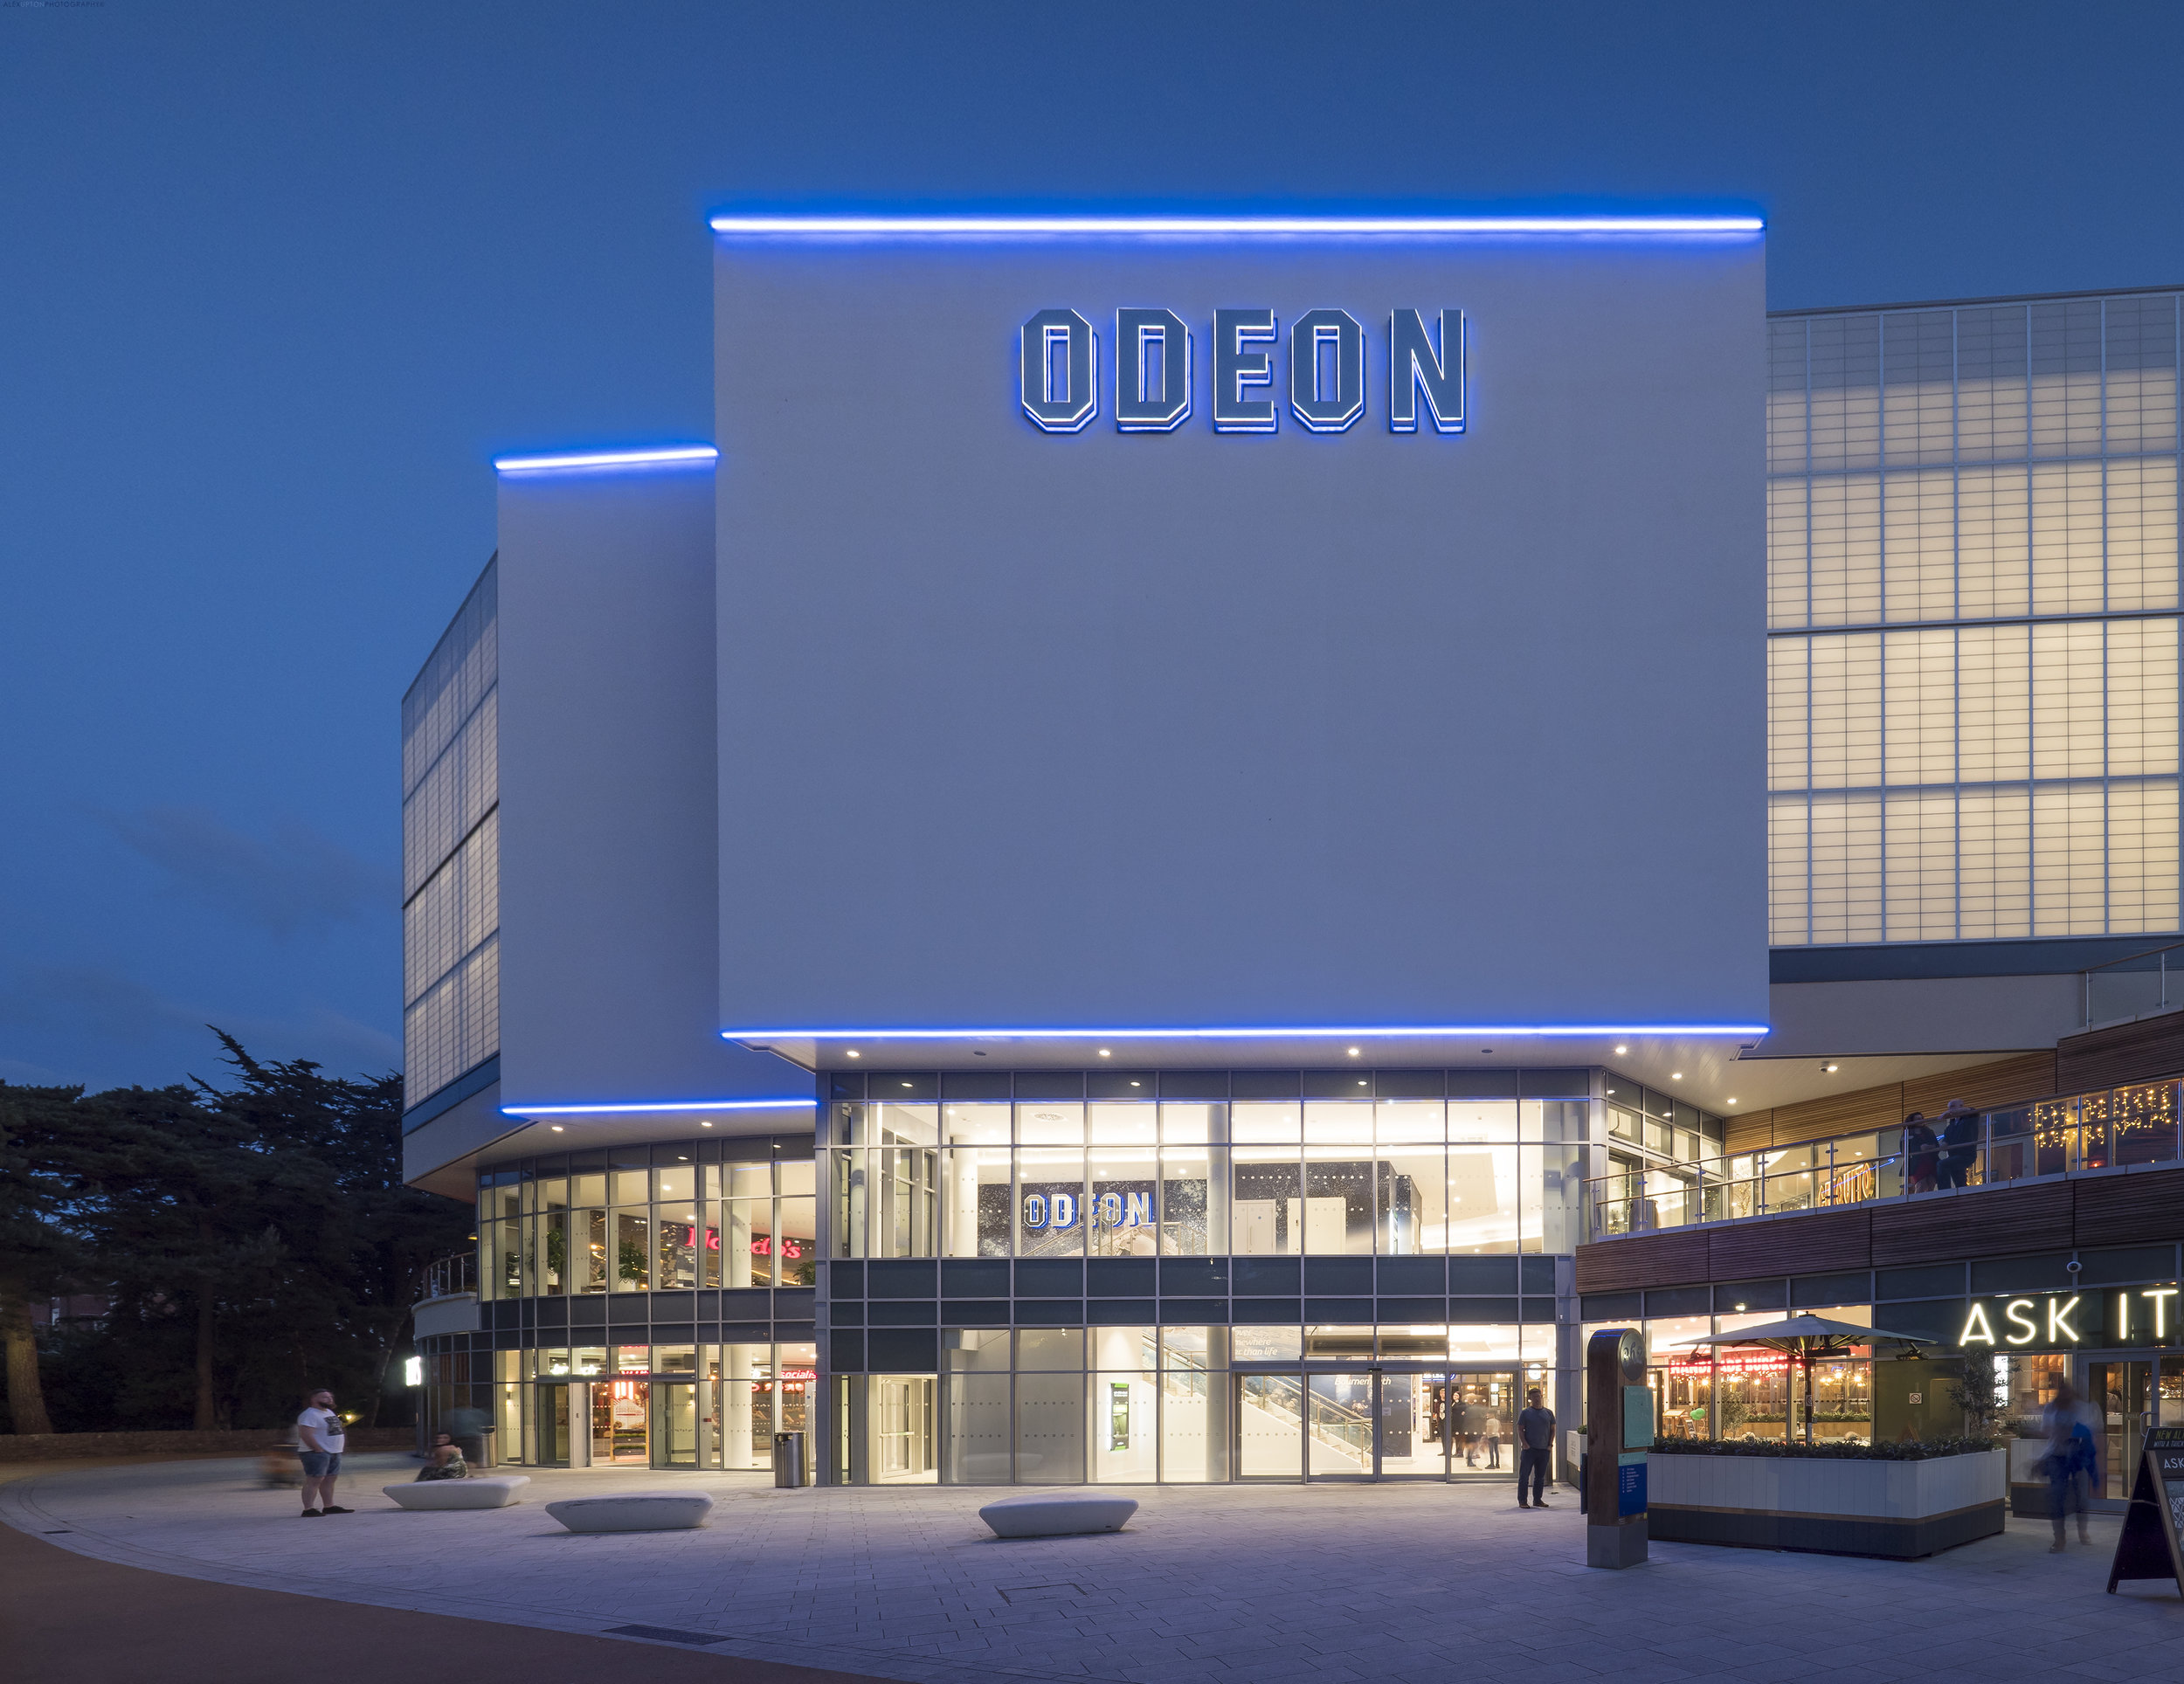 Architectural Photography of BH2 Leisure centres Odeon Cinema.